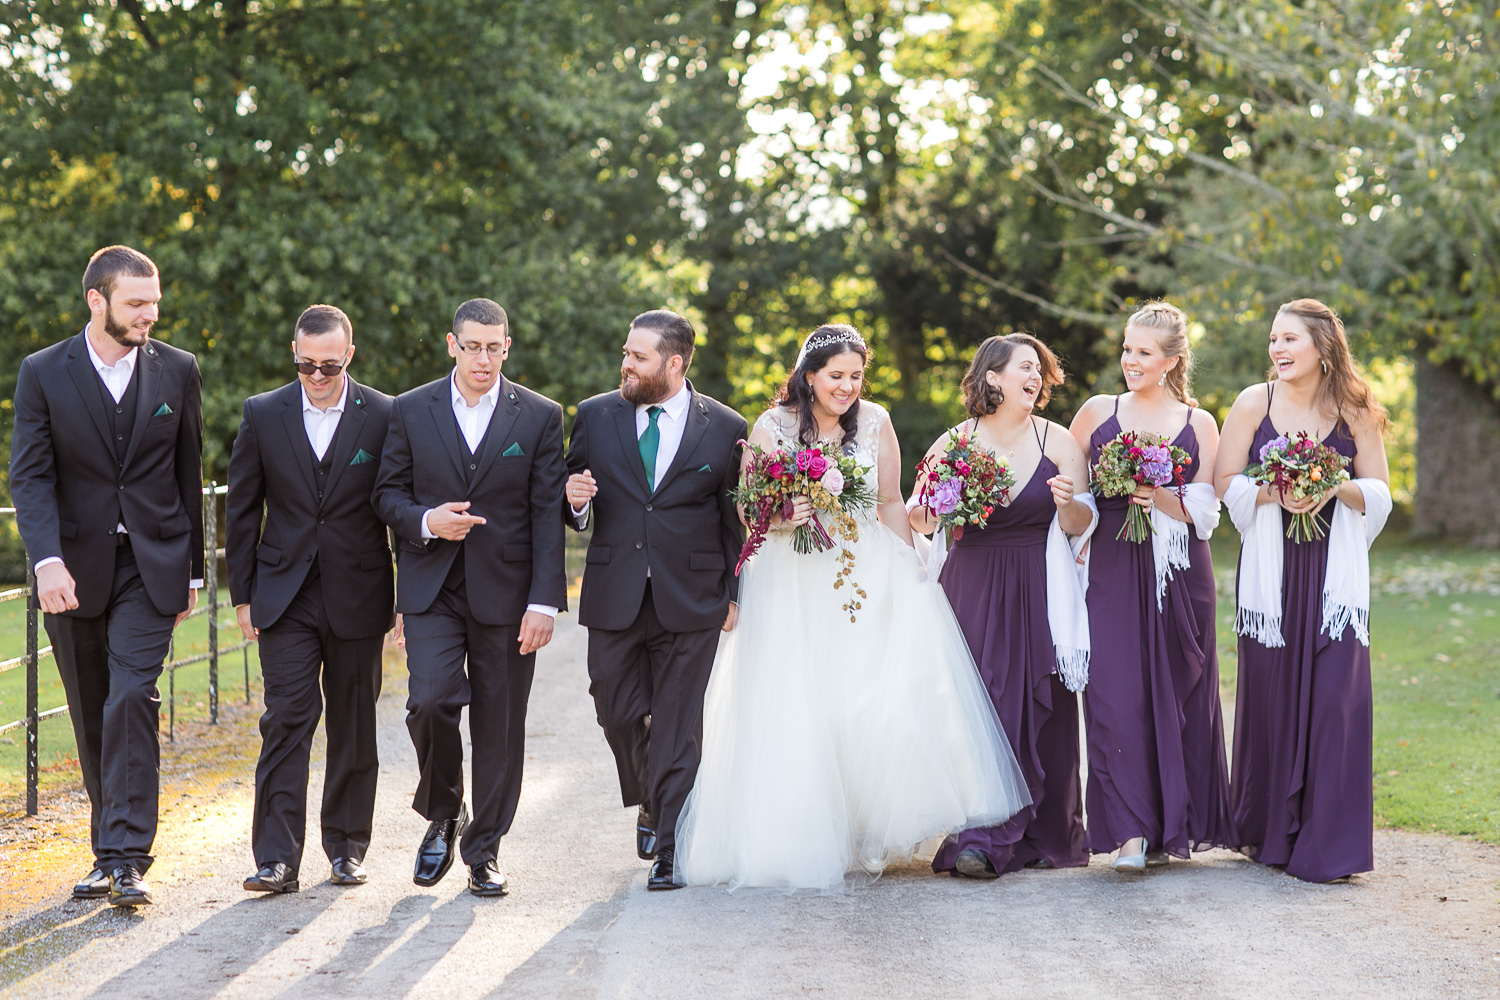 Bridal party photograph a walking smiling and laughing shot with bride and groom